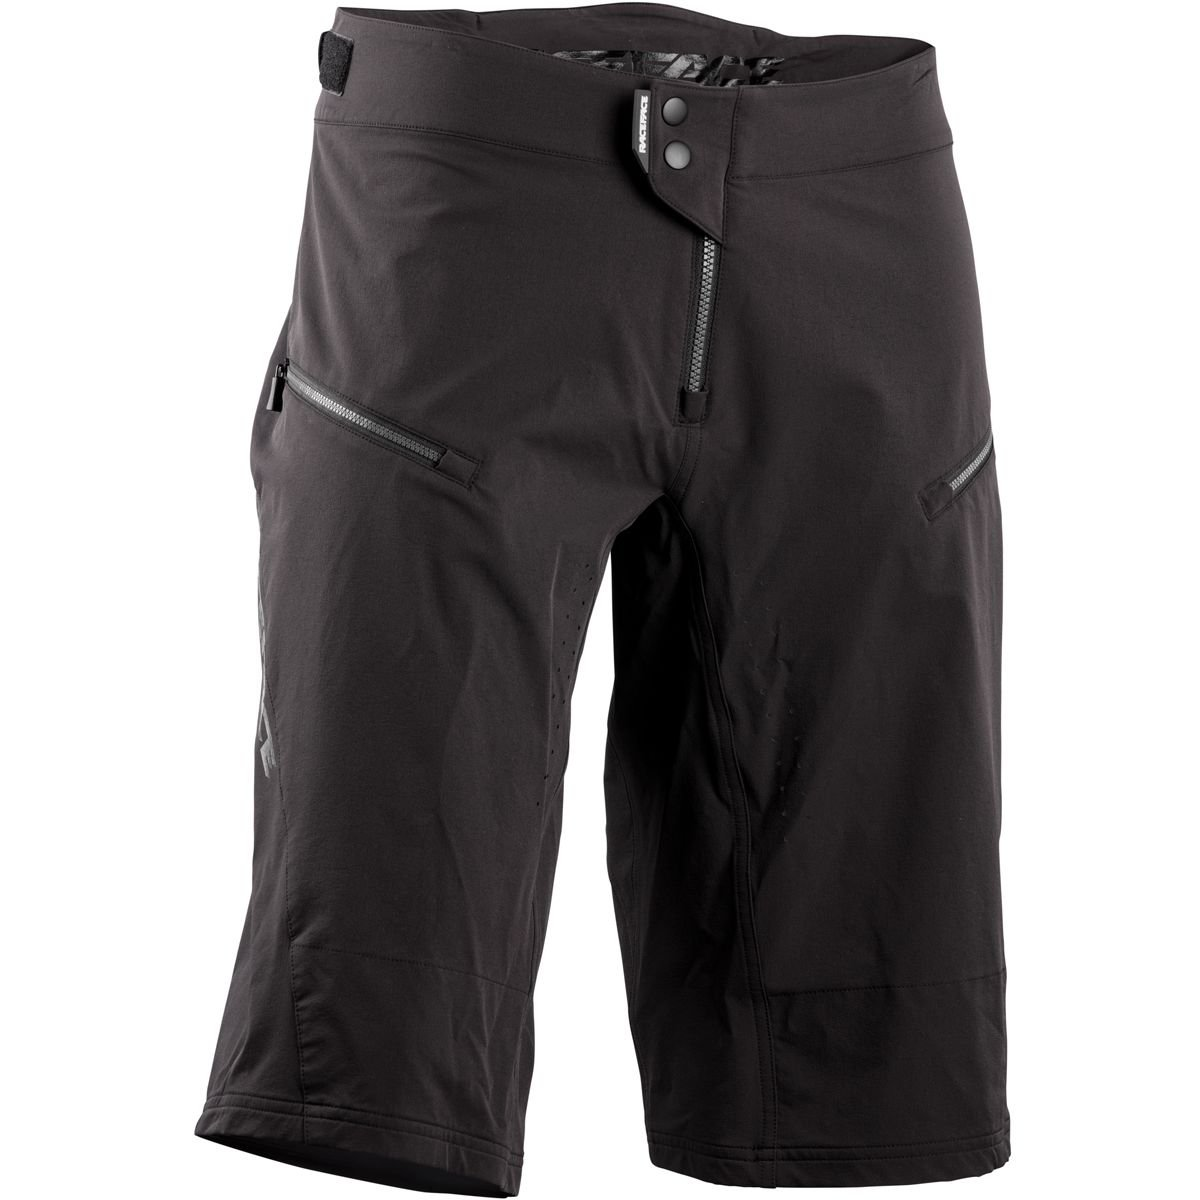 Race Face Trail-Short Indy Schwarz Gr. M